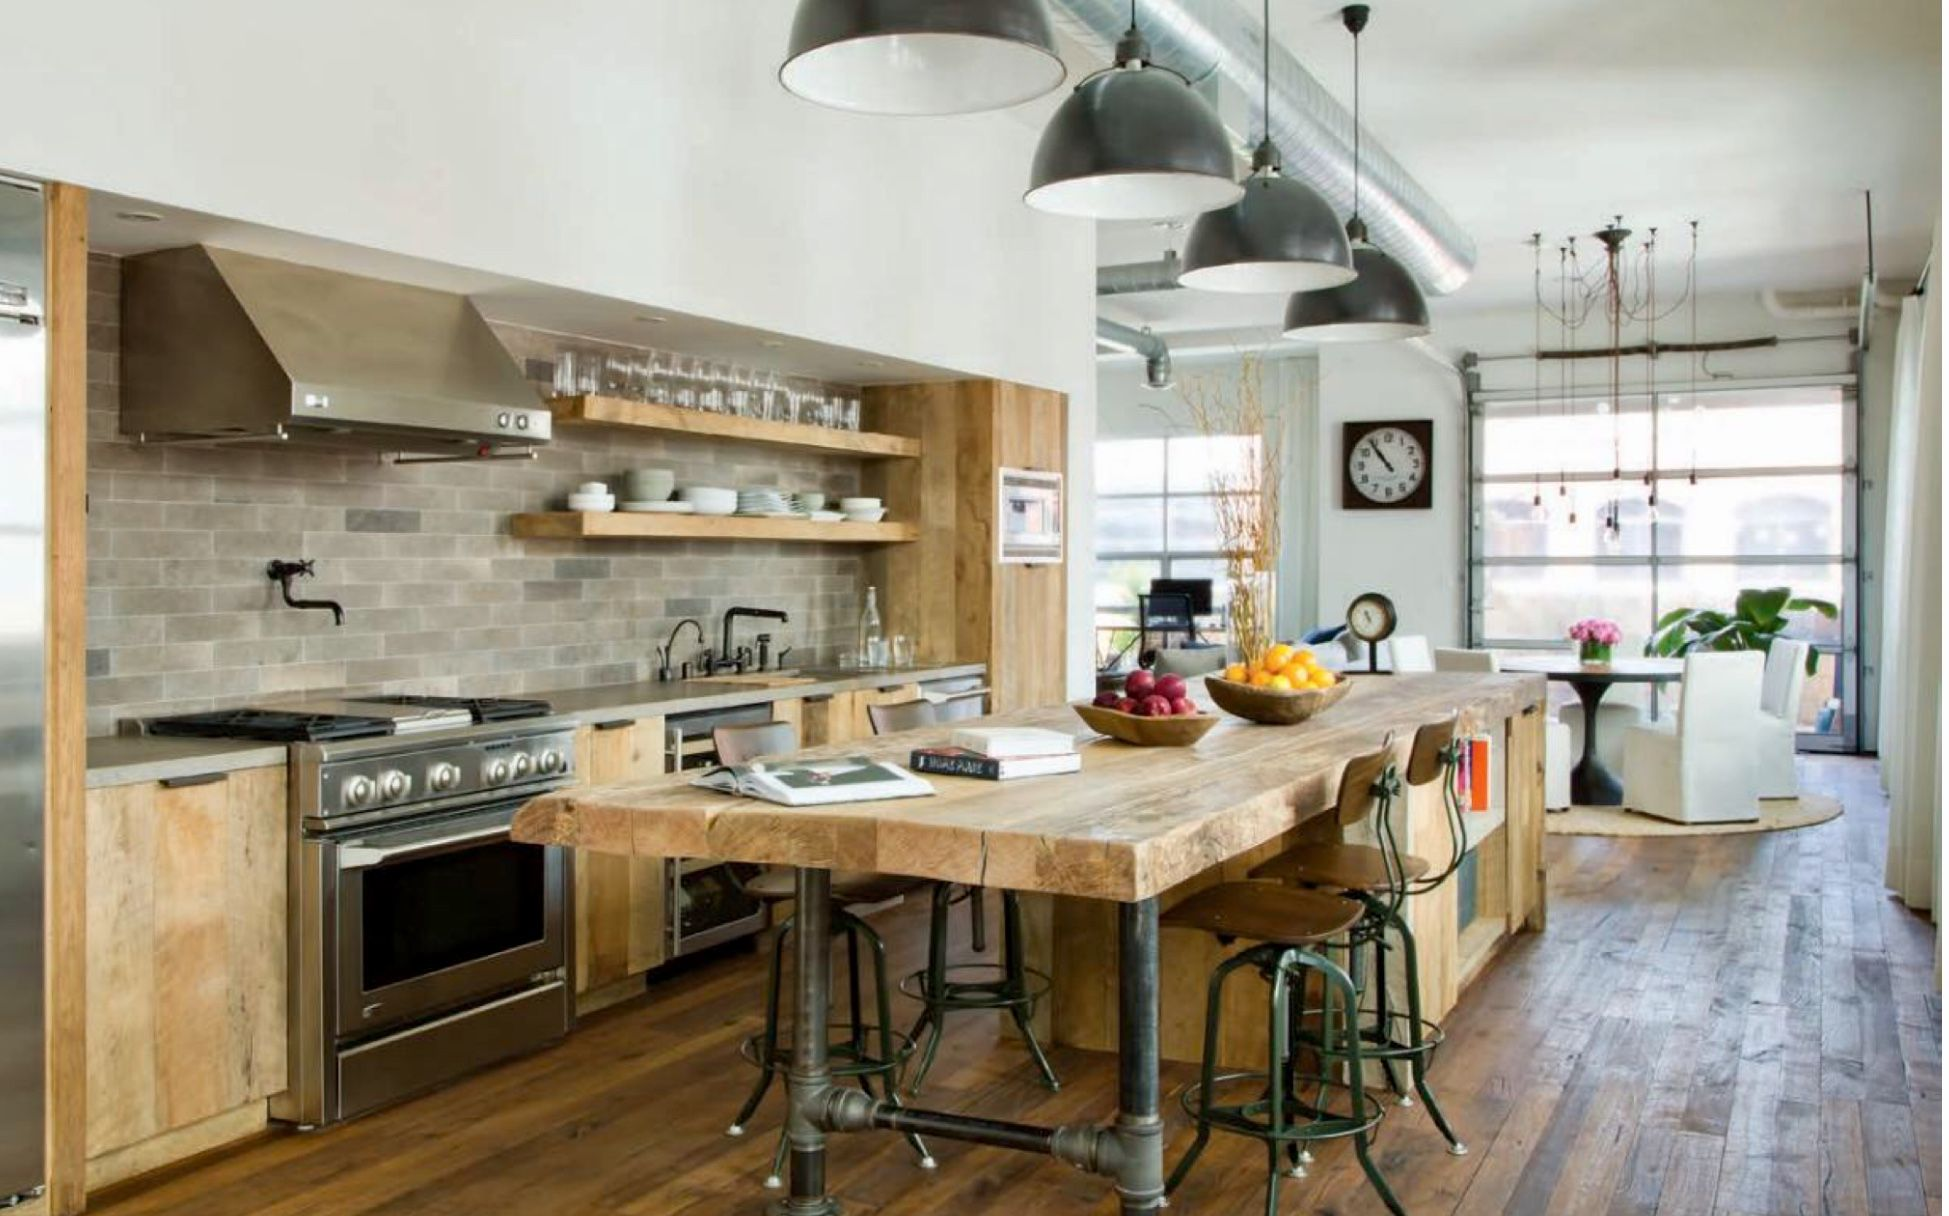 Rustic Elements Used In Kitchen